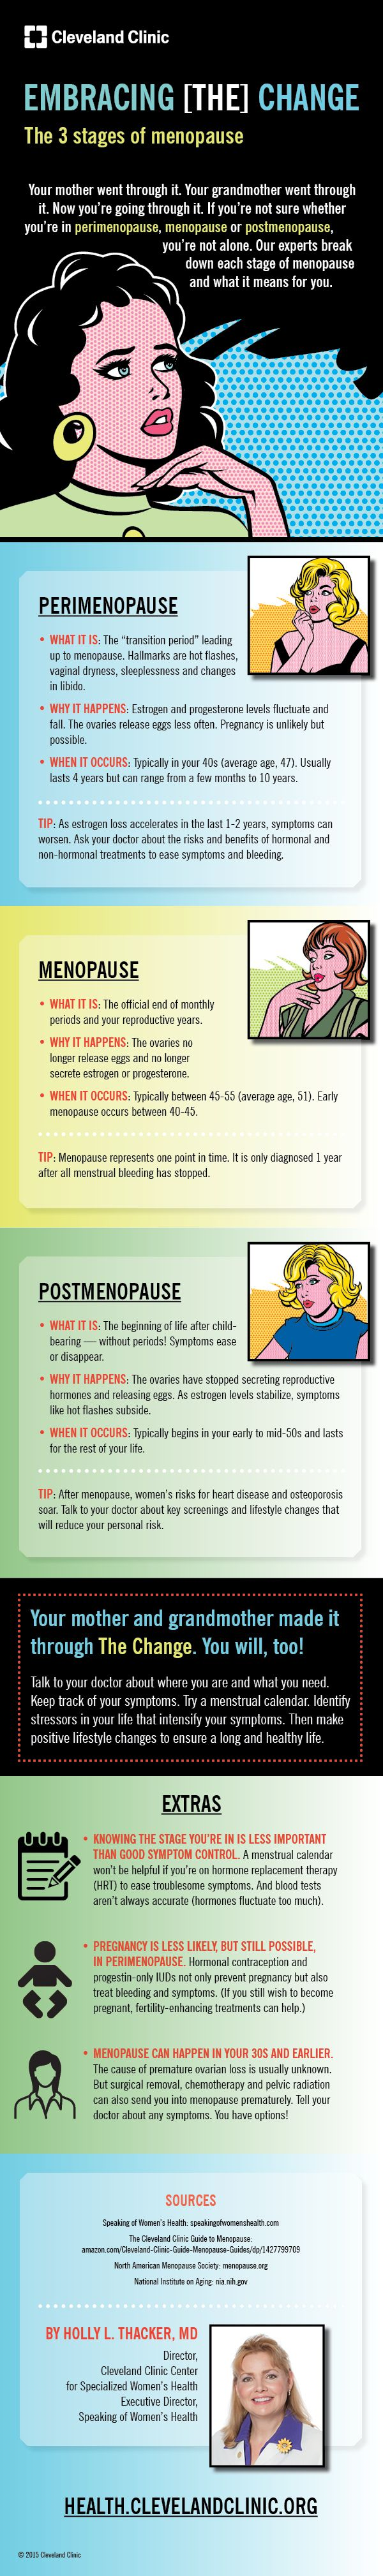 How the 3 Stages of Menopause Affect You (Infographic)